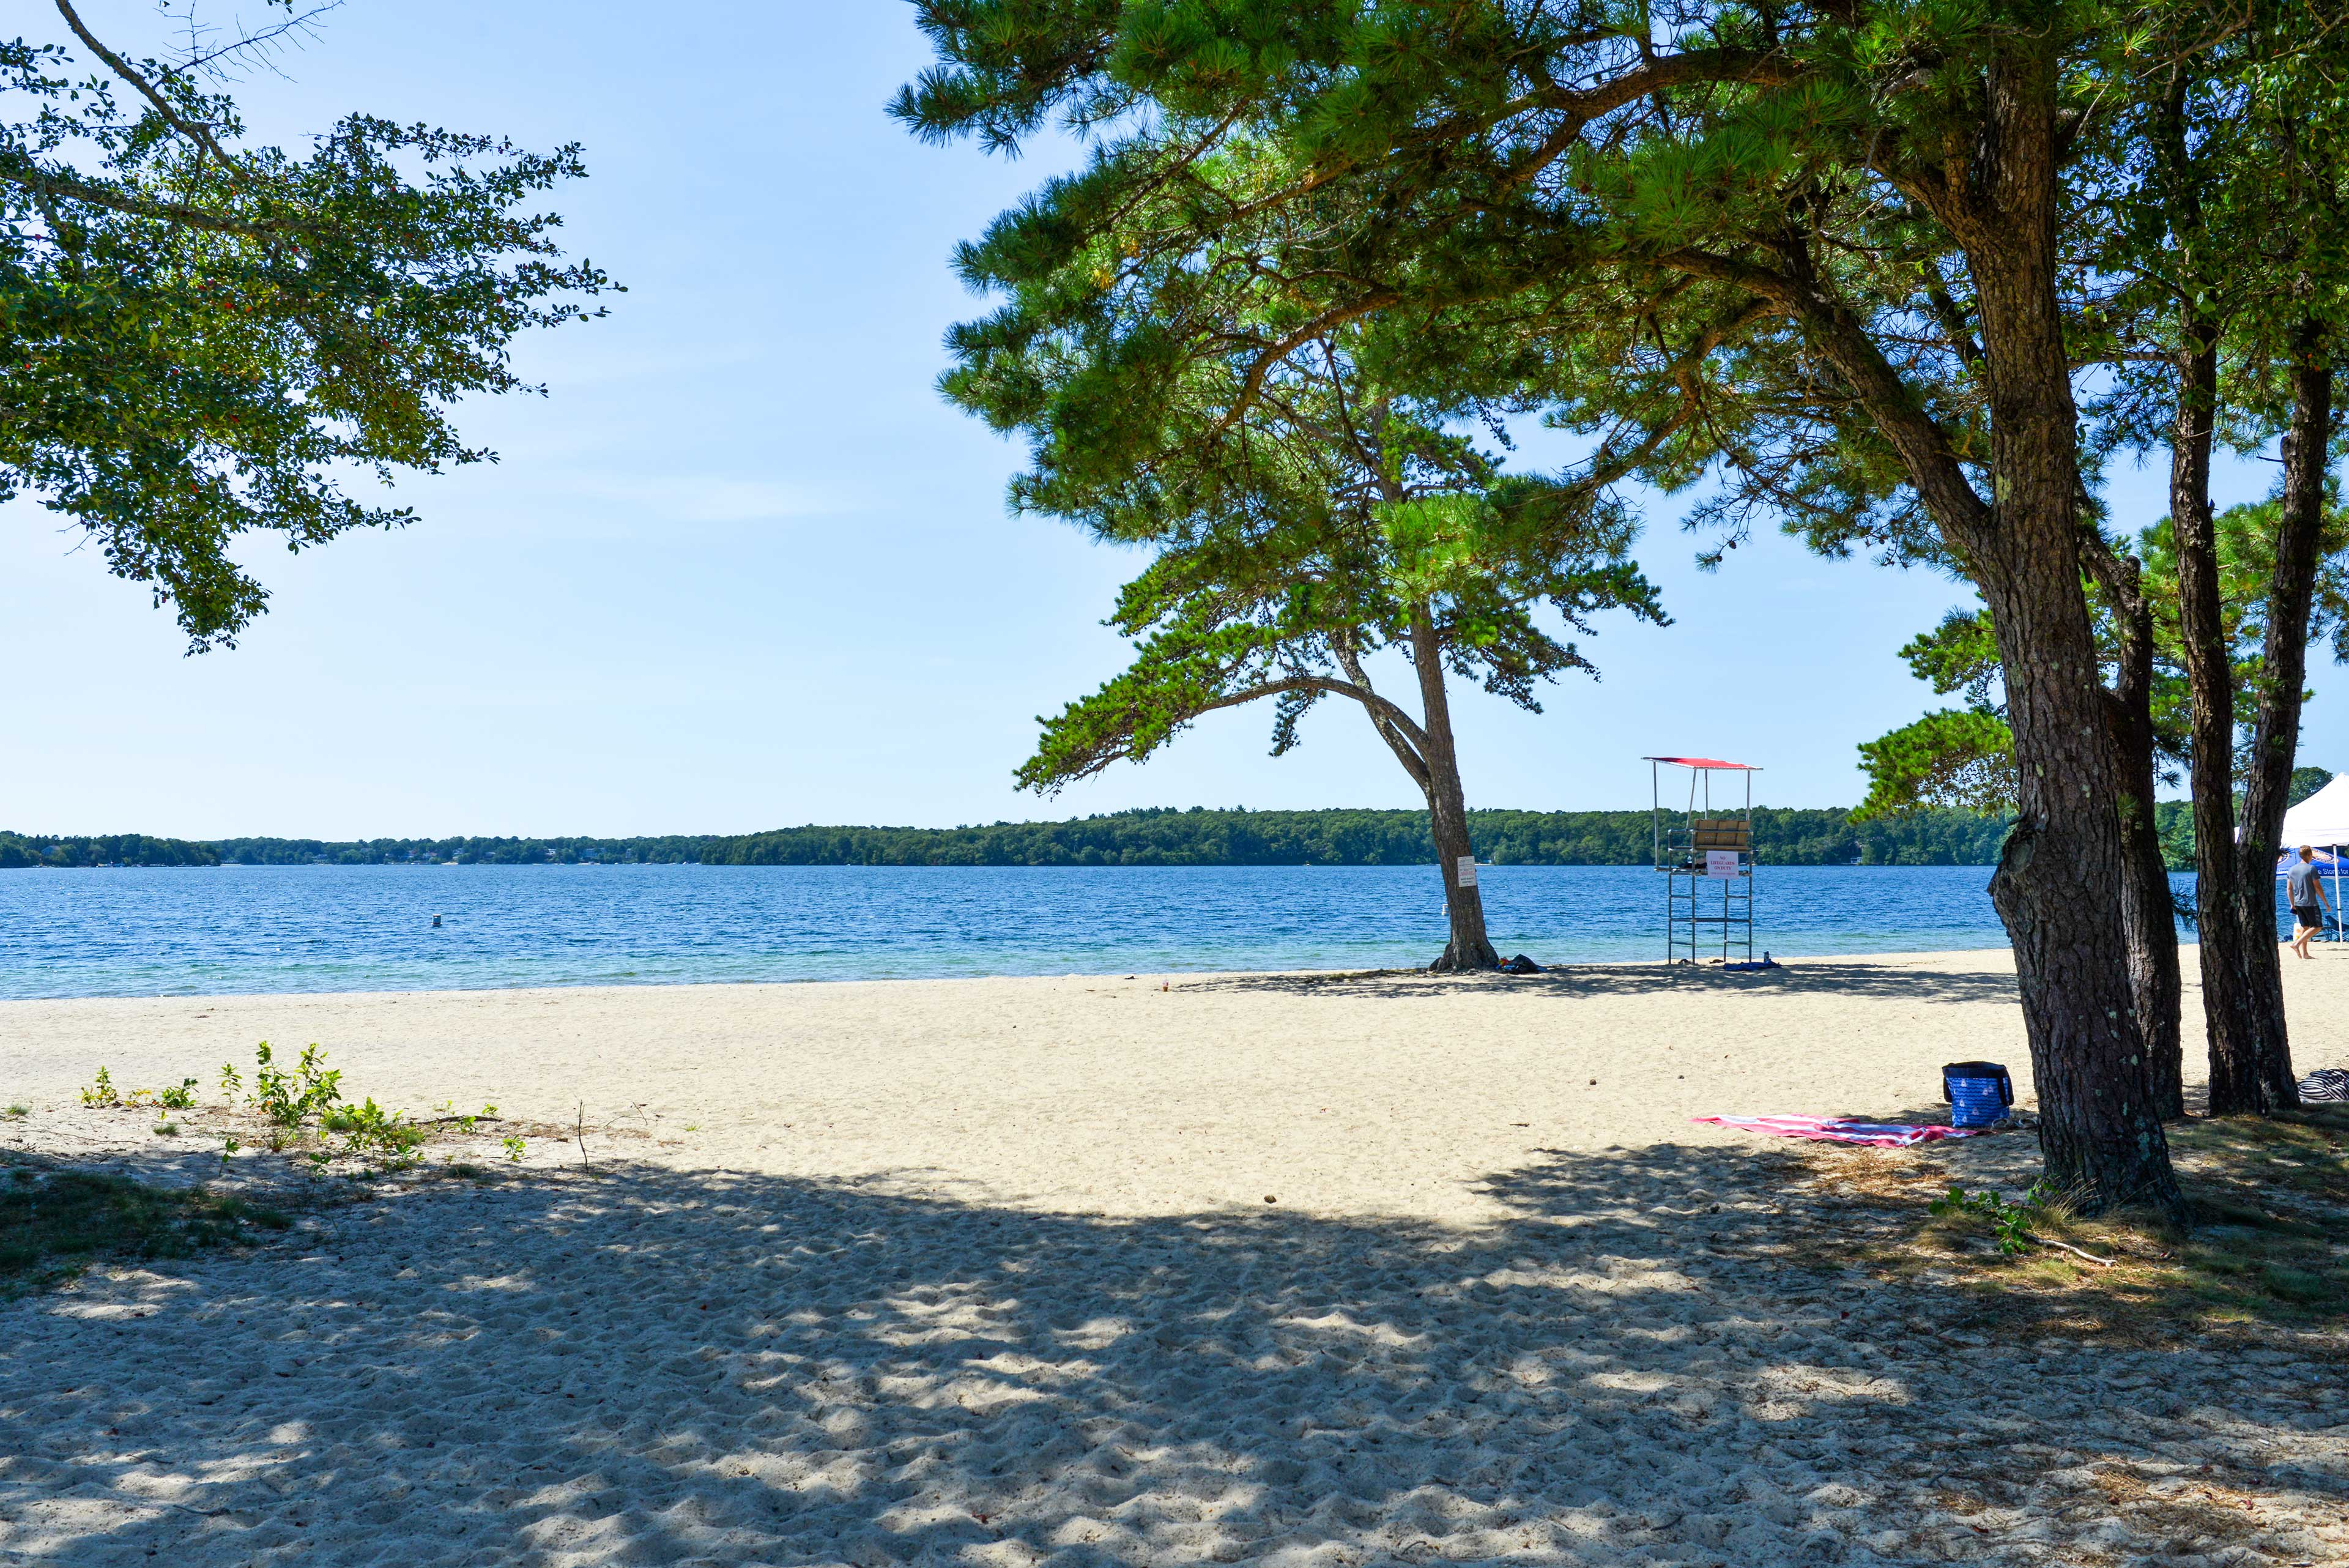 Spend an unforgettable day on the sandy shores of the park!